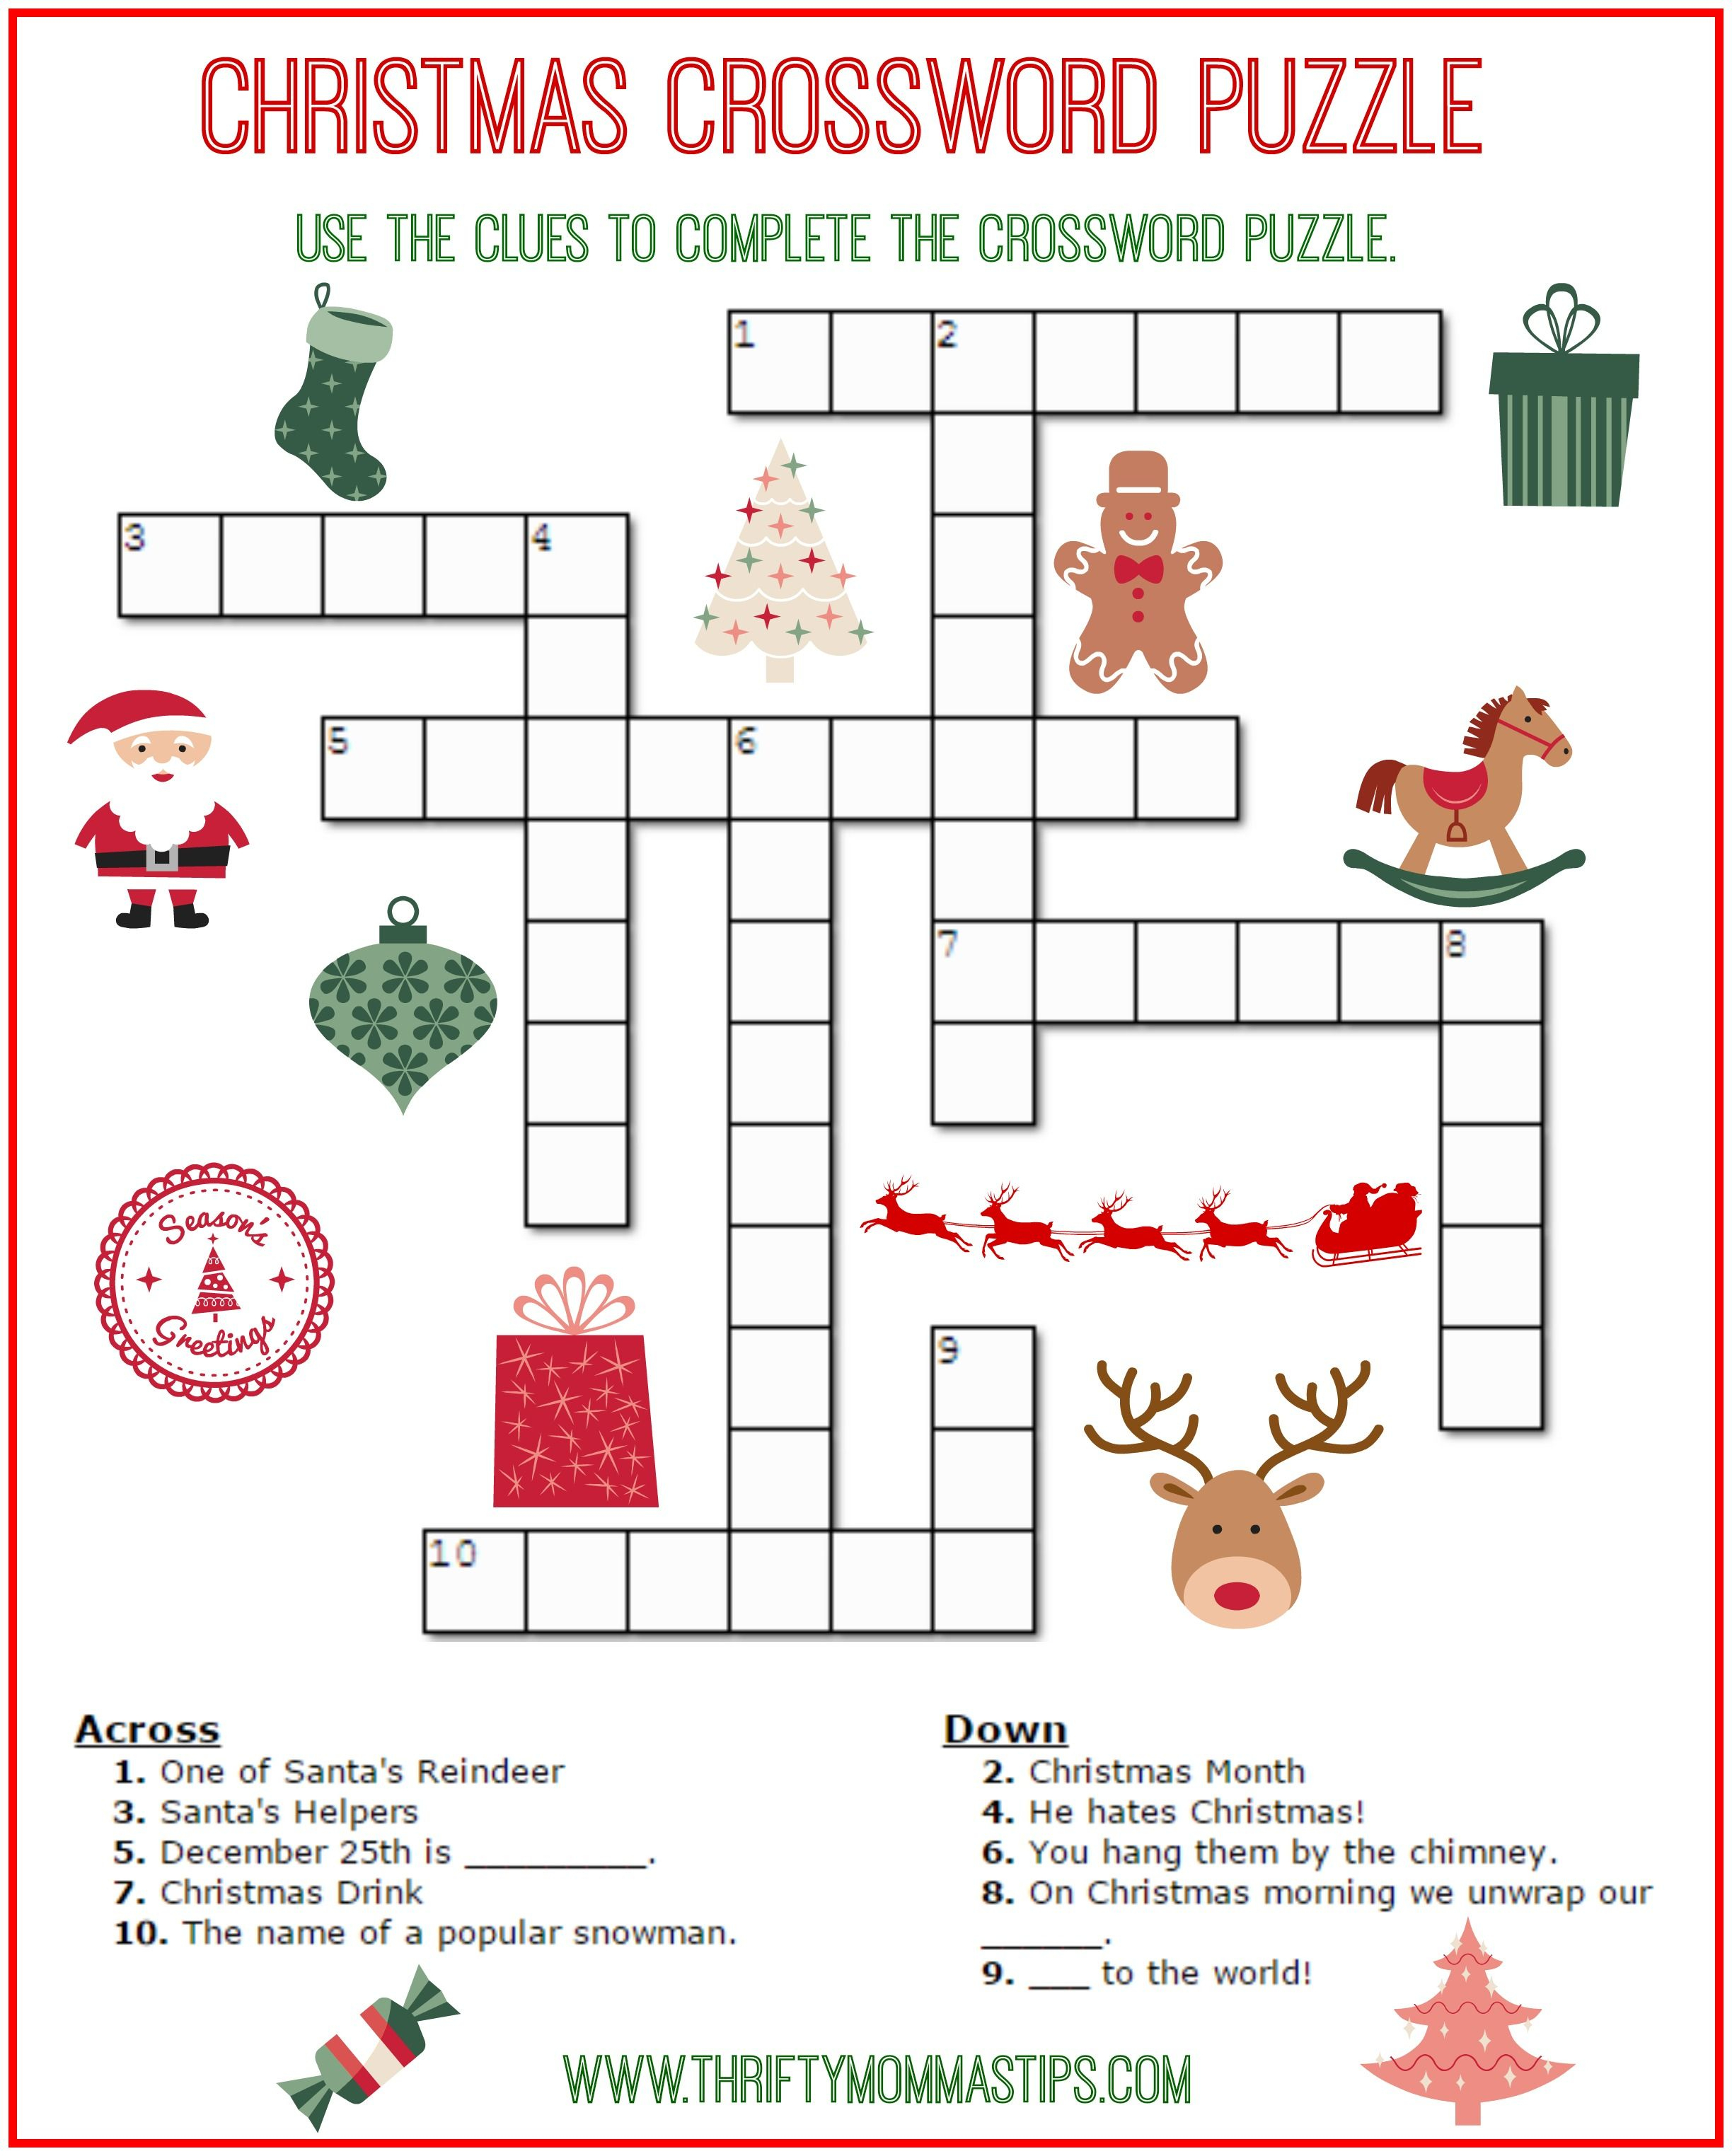 Christmas Crossword Puzzle Printable Thrifty Mommas Tips Uirq7Lrq - Printable Reverse Crossword Puzzle